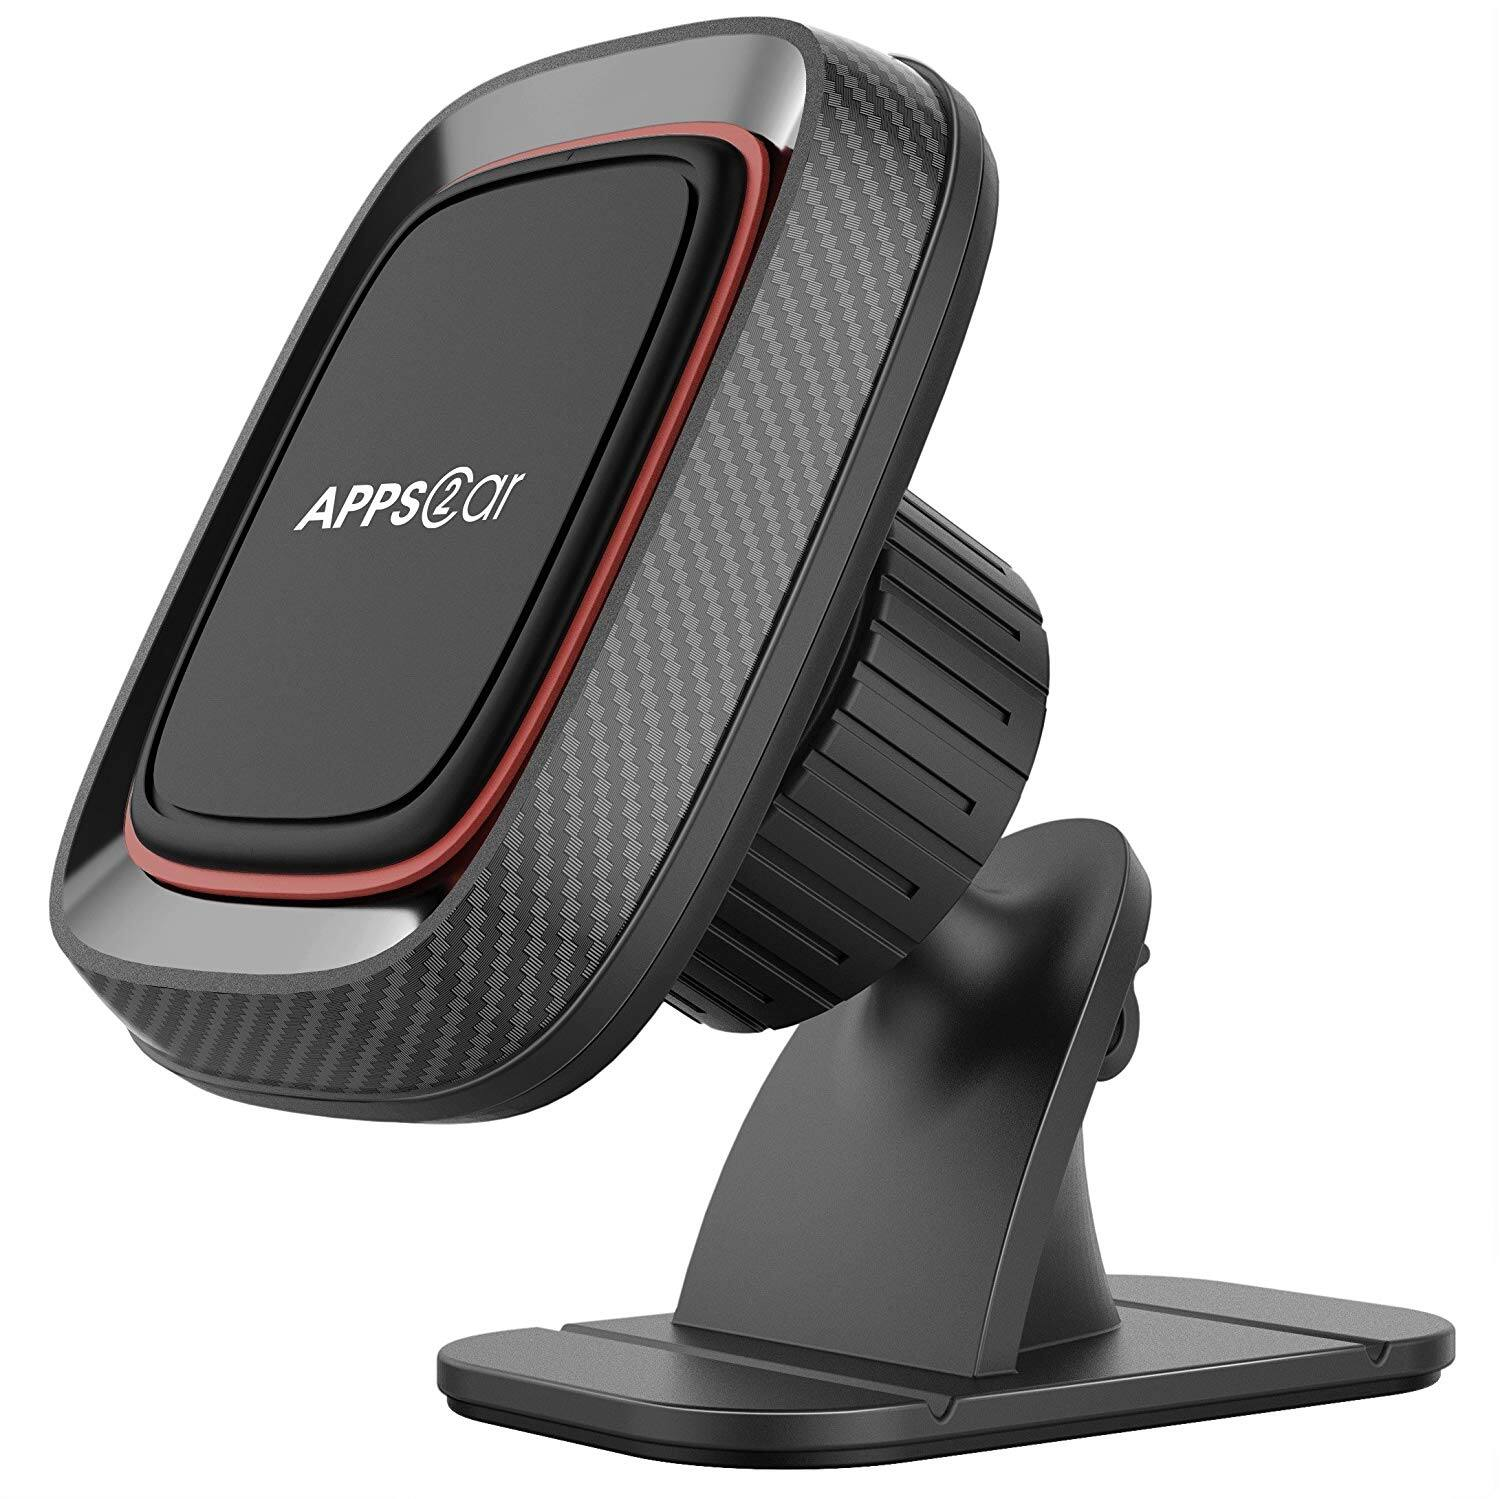 Stick On Dashboard Universal Magnetic Car Phone Mount Holder with 3M Adhesive for $4.76 @Amazon